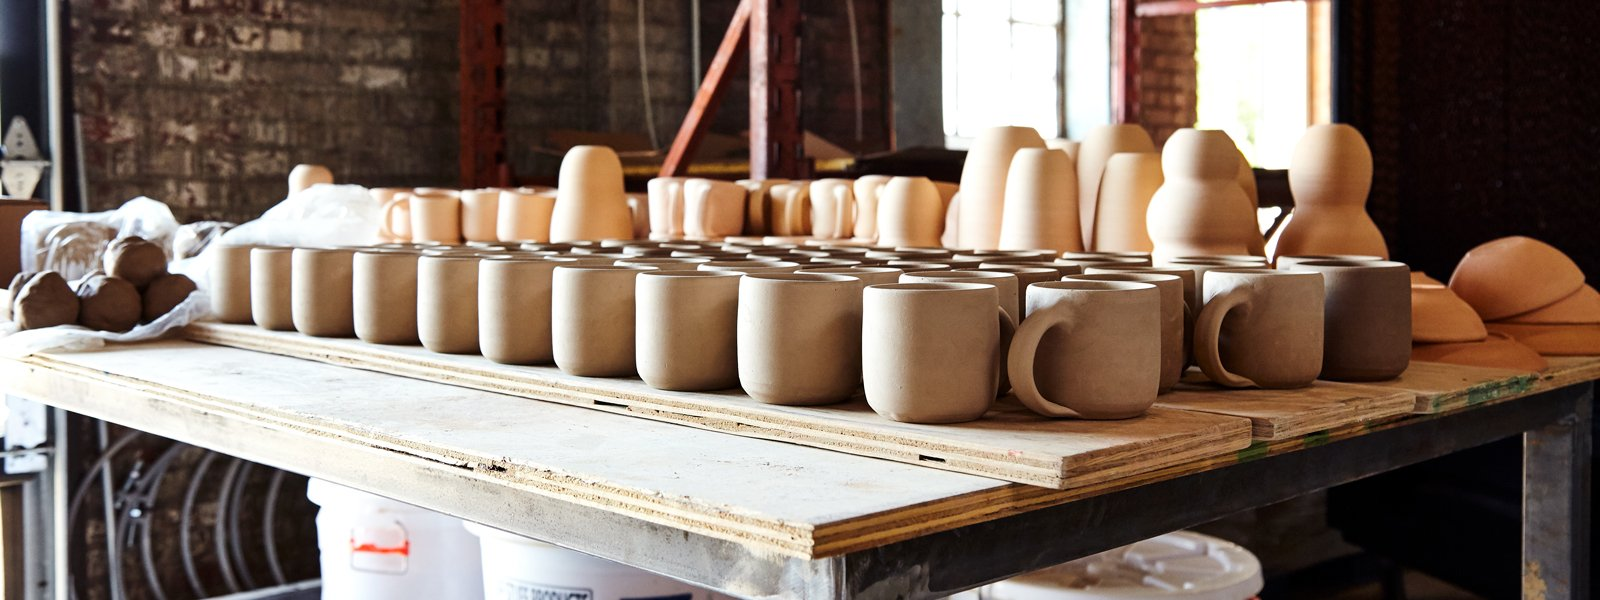 Stacks of Third Wave Mugs by East Fork Pottery and Counter Culture Coffee waiting to be glazed